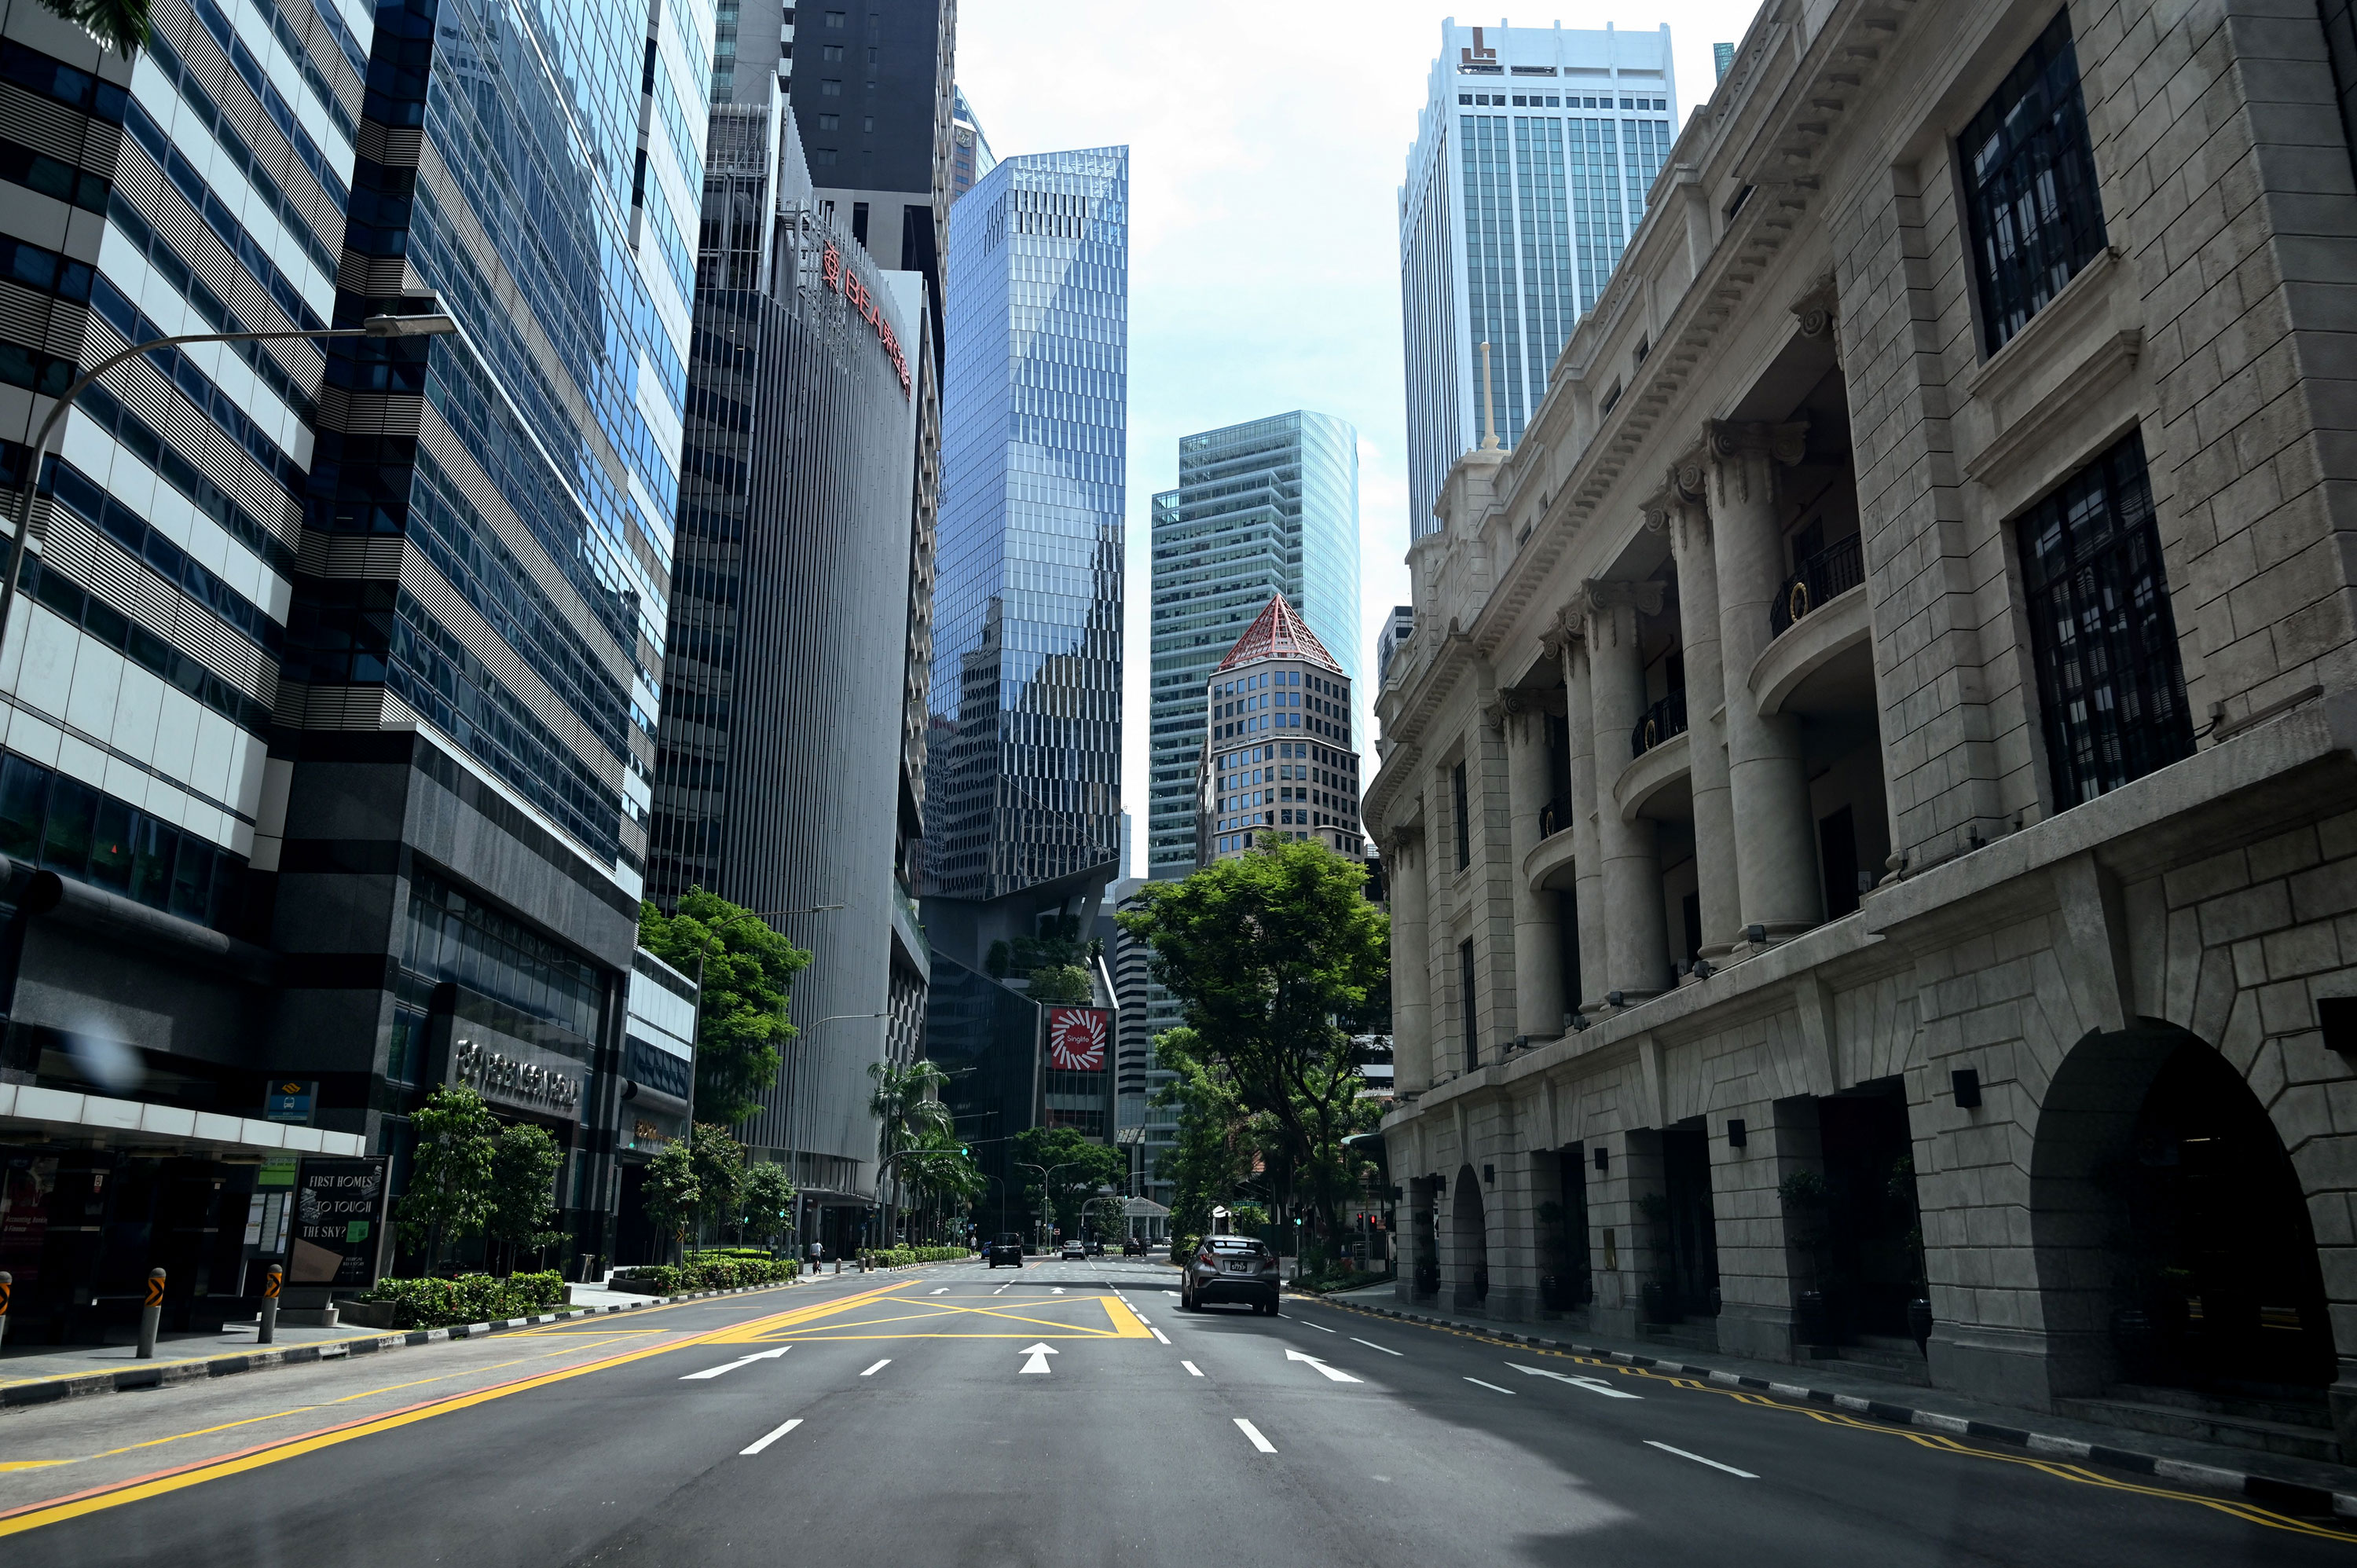 A car drives along an otherwise empty road in Singapore's financial district on April 24.